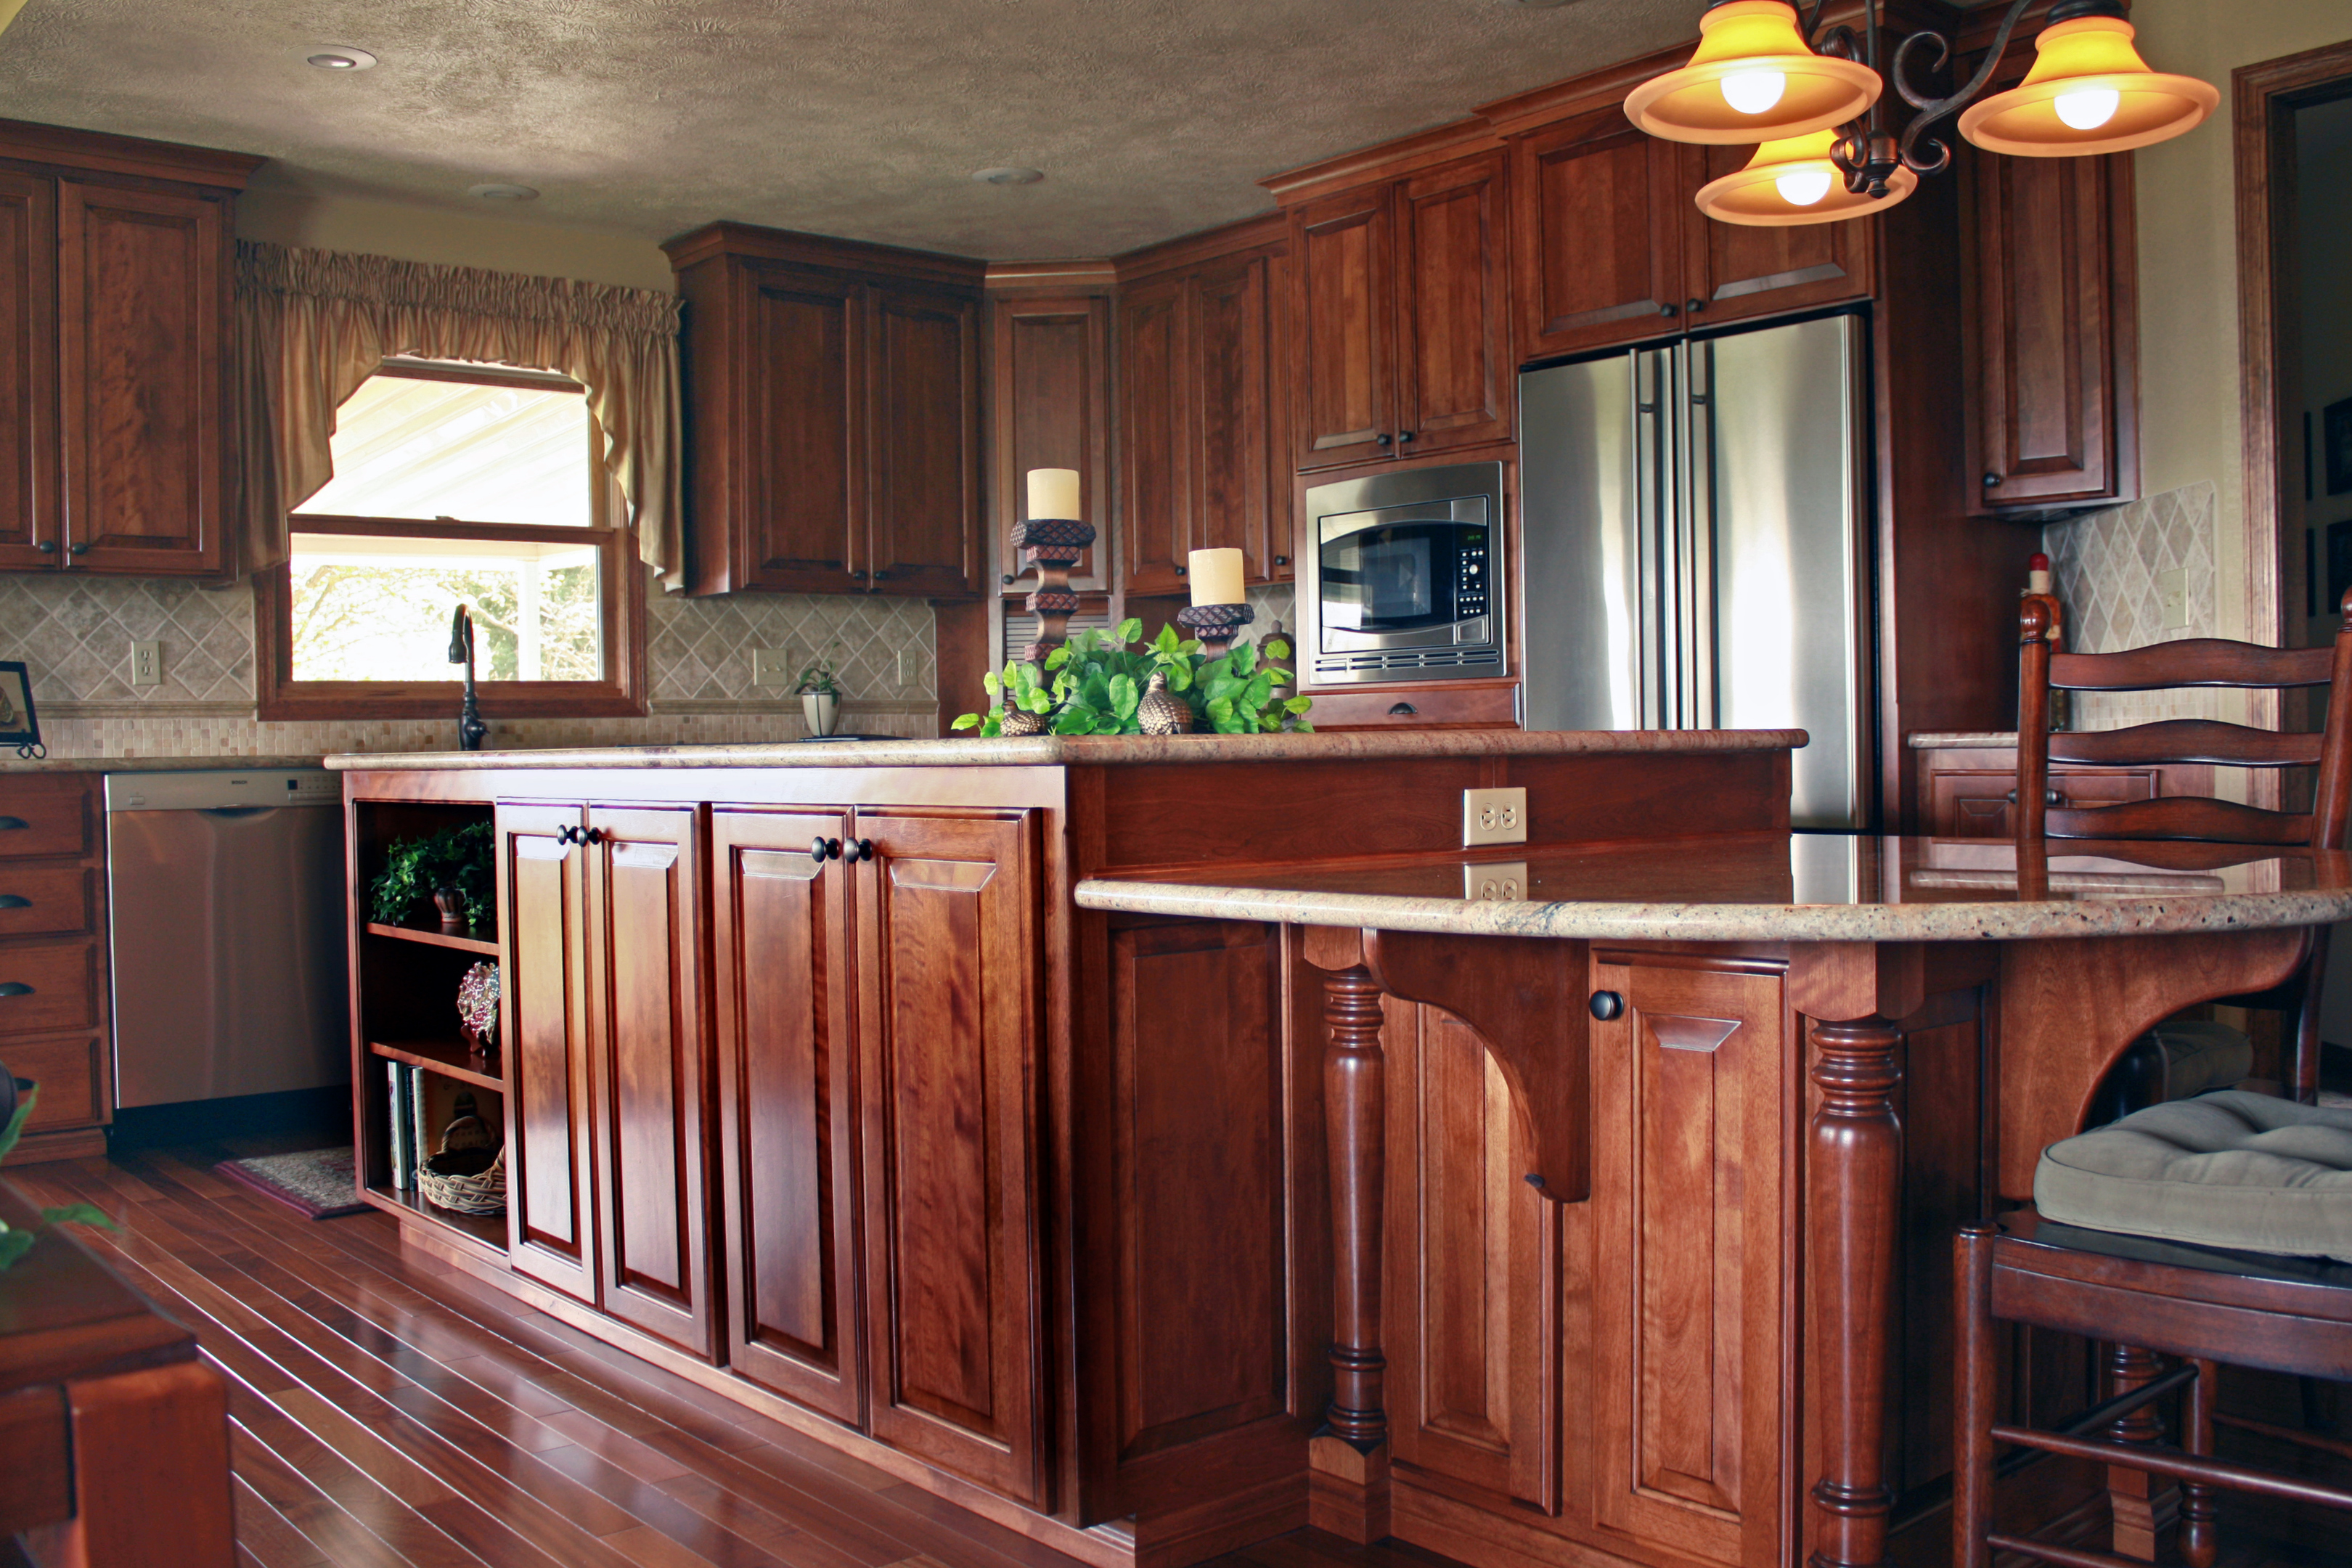 Thumb Kitchen Traditional Style Red Birch Dark Style Raised Panel Island  With Posts And Bar Supports